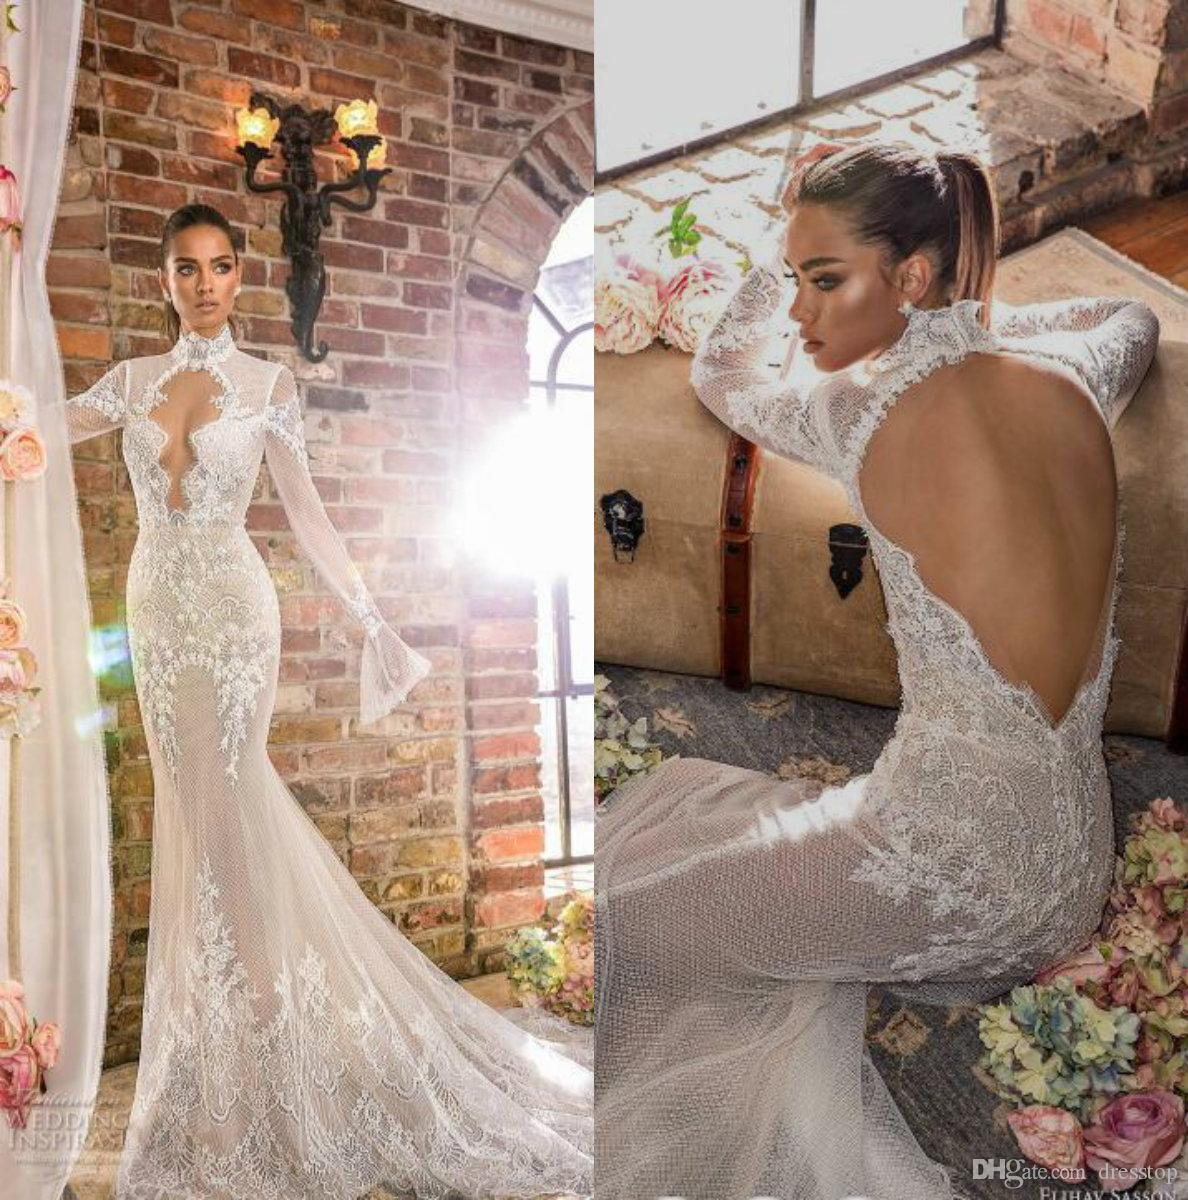 73f0194088d4 Elihav Sasson 2019 Mermaid Wedding Dress Long Sleeve High Neck Backless  Lace Bridal Gowns Robes De Mariée Custom Beach Wedding Gowns Alfred Wedding  Dresses ...